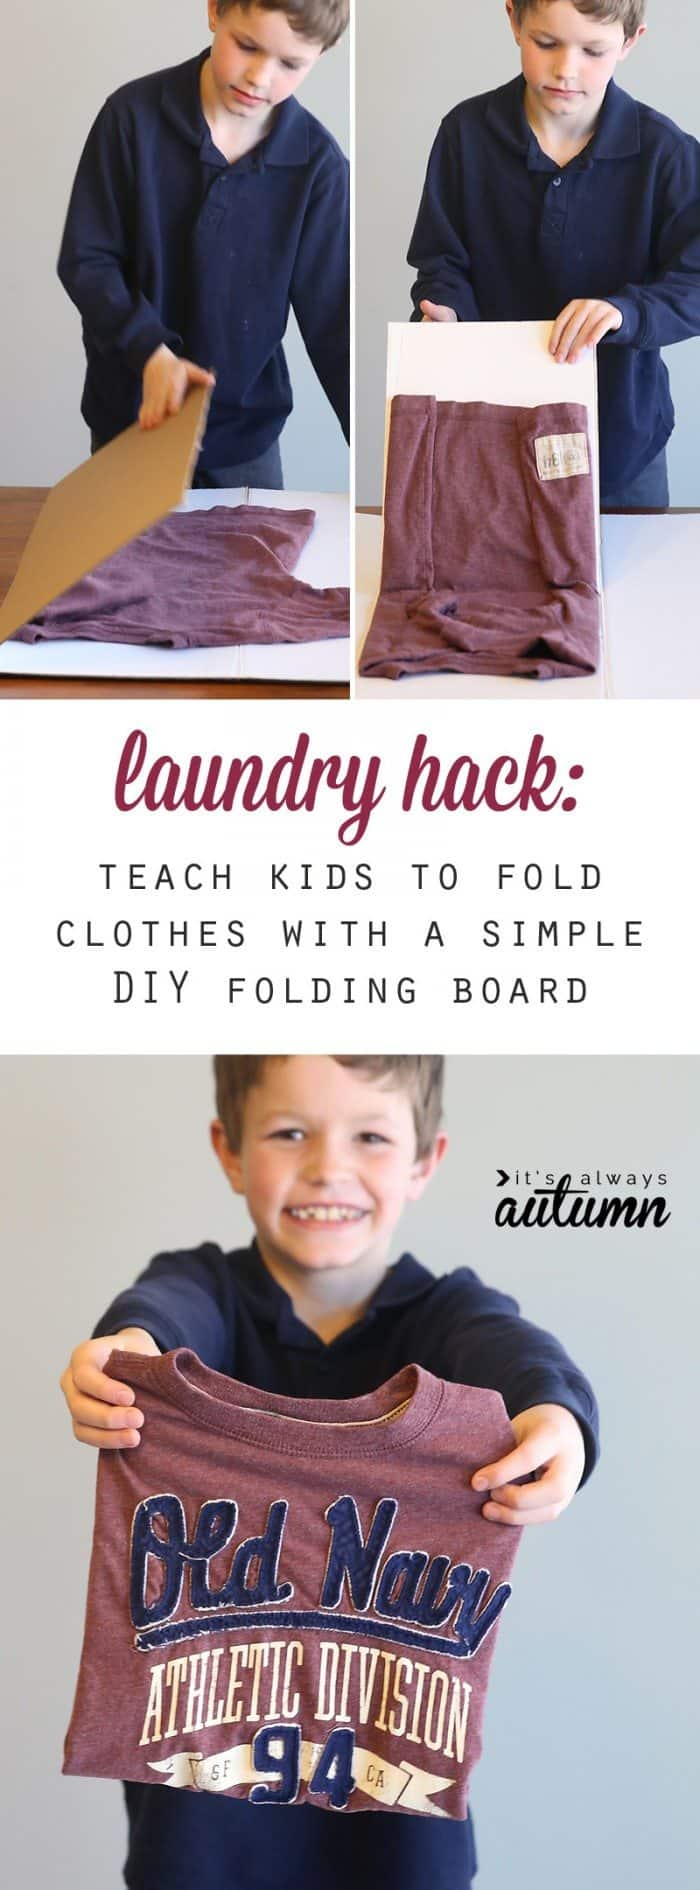 laundry-hack-kids-how-to-teach-children-to-fold-laundry-diy-folding-board-1